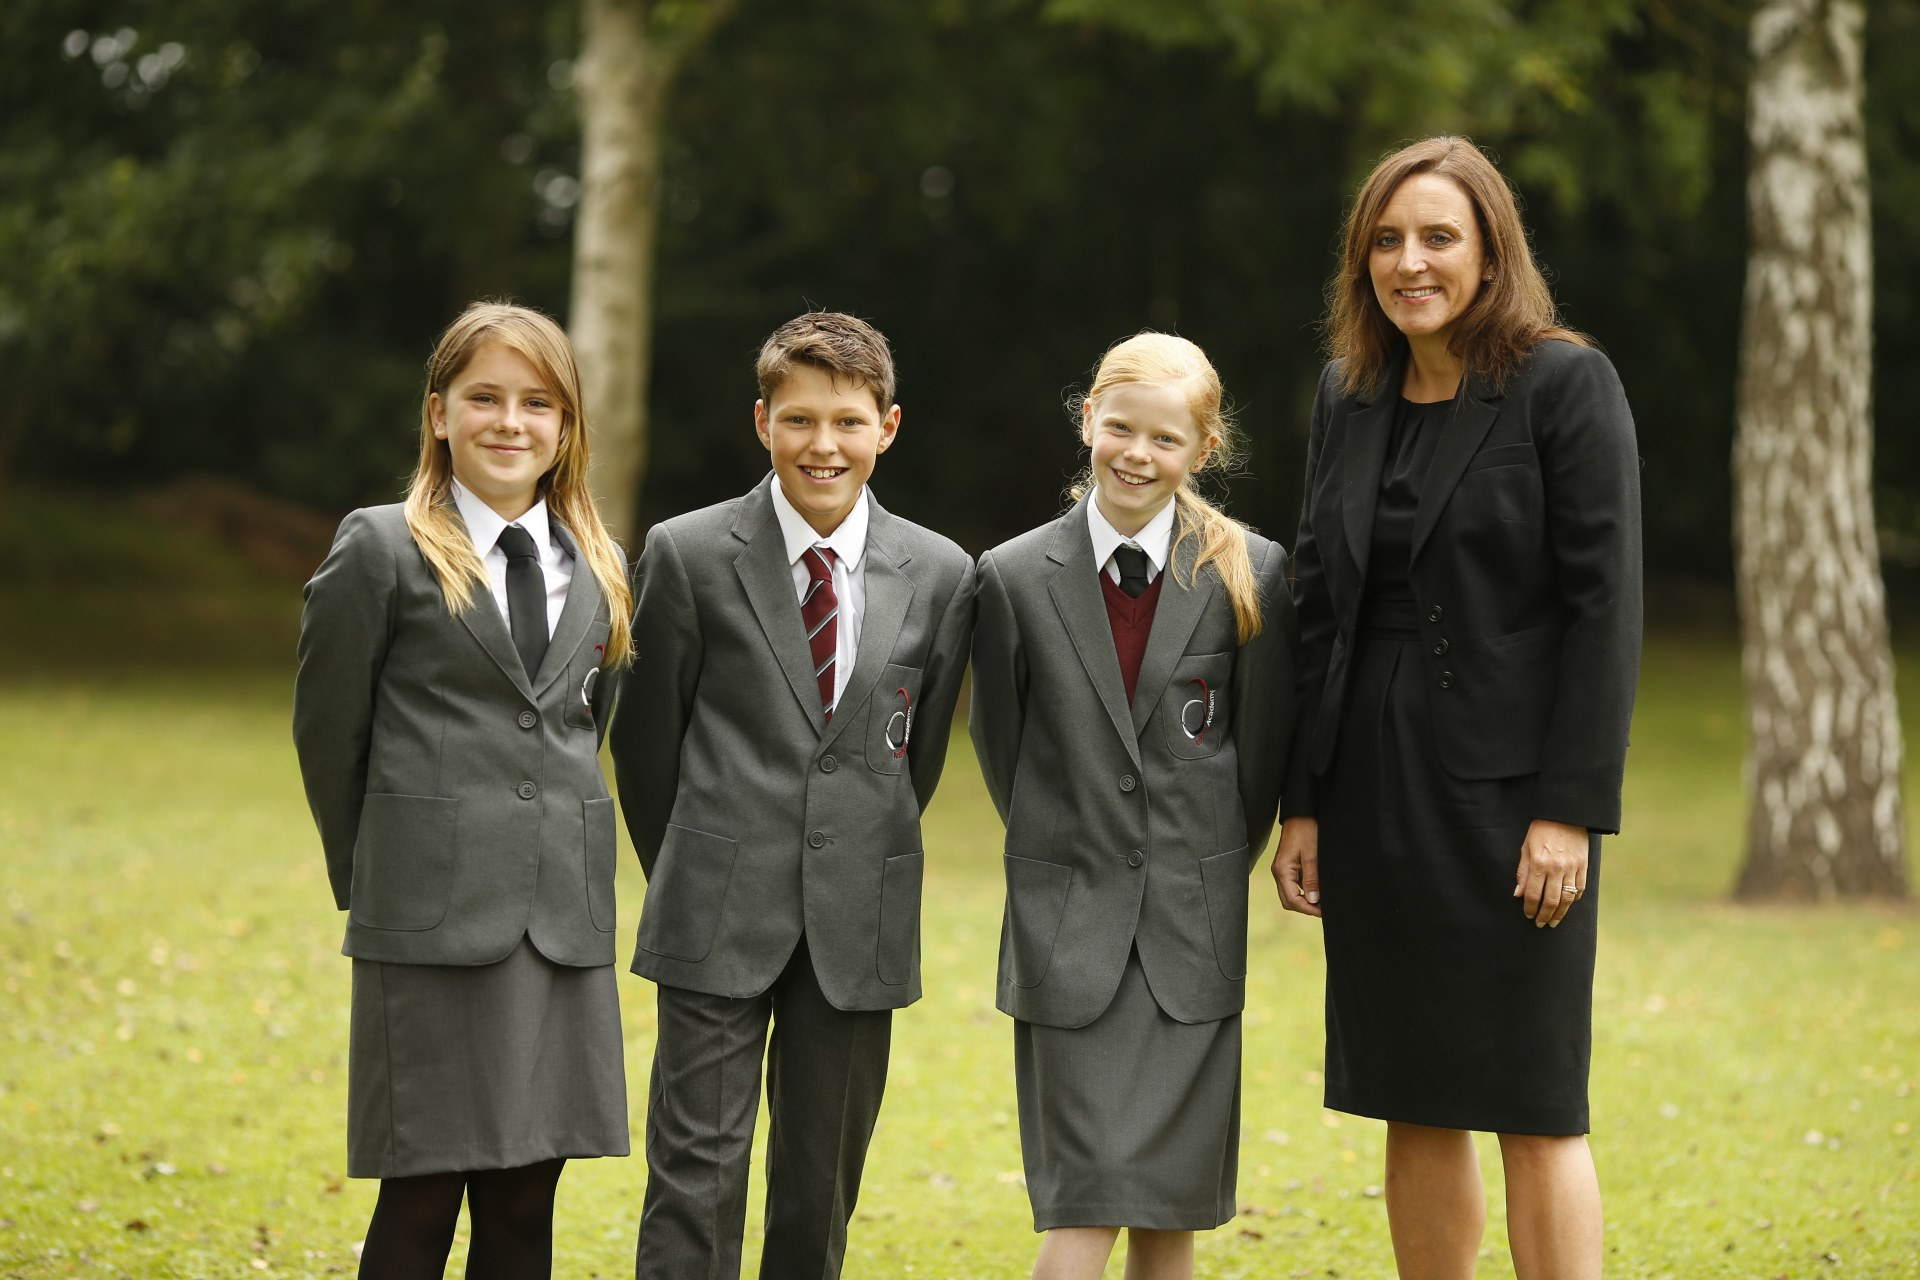 Case: Ansford Academy adopts Persona Life Skills